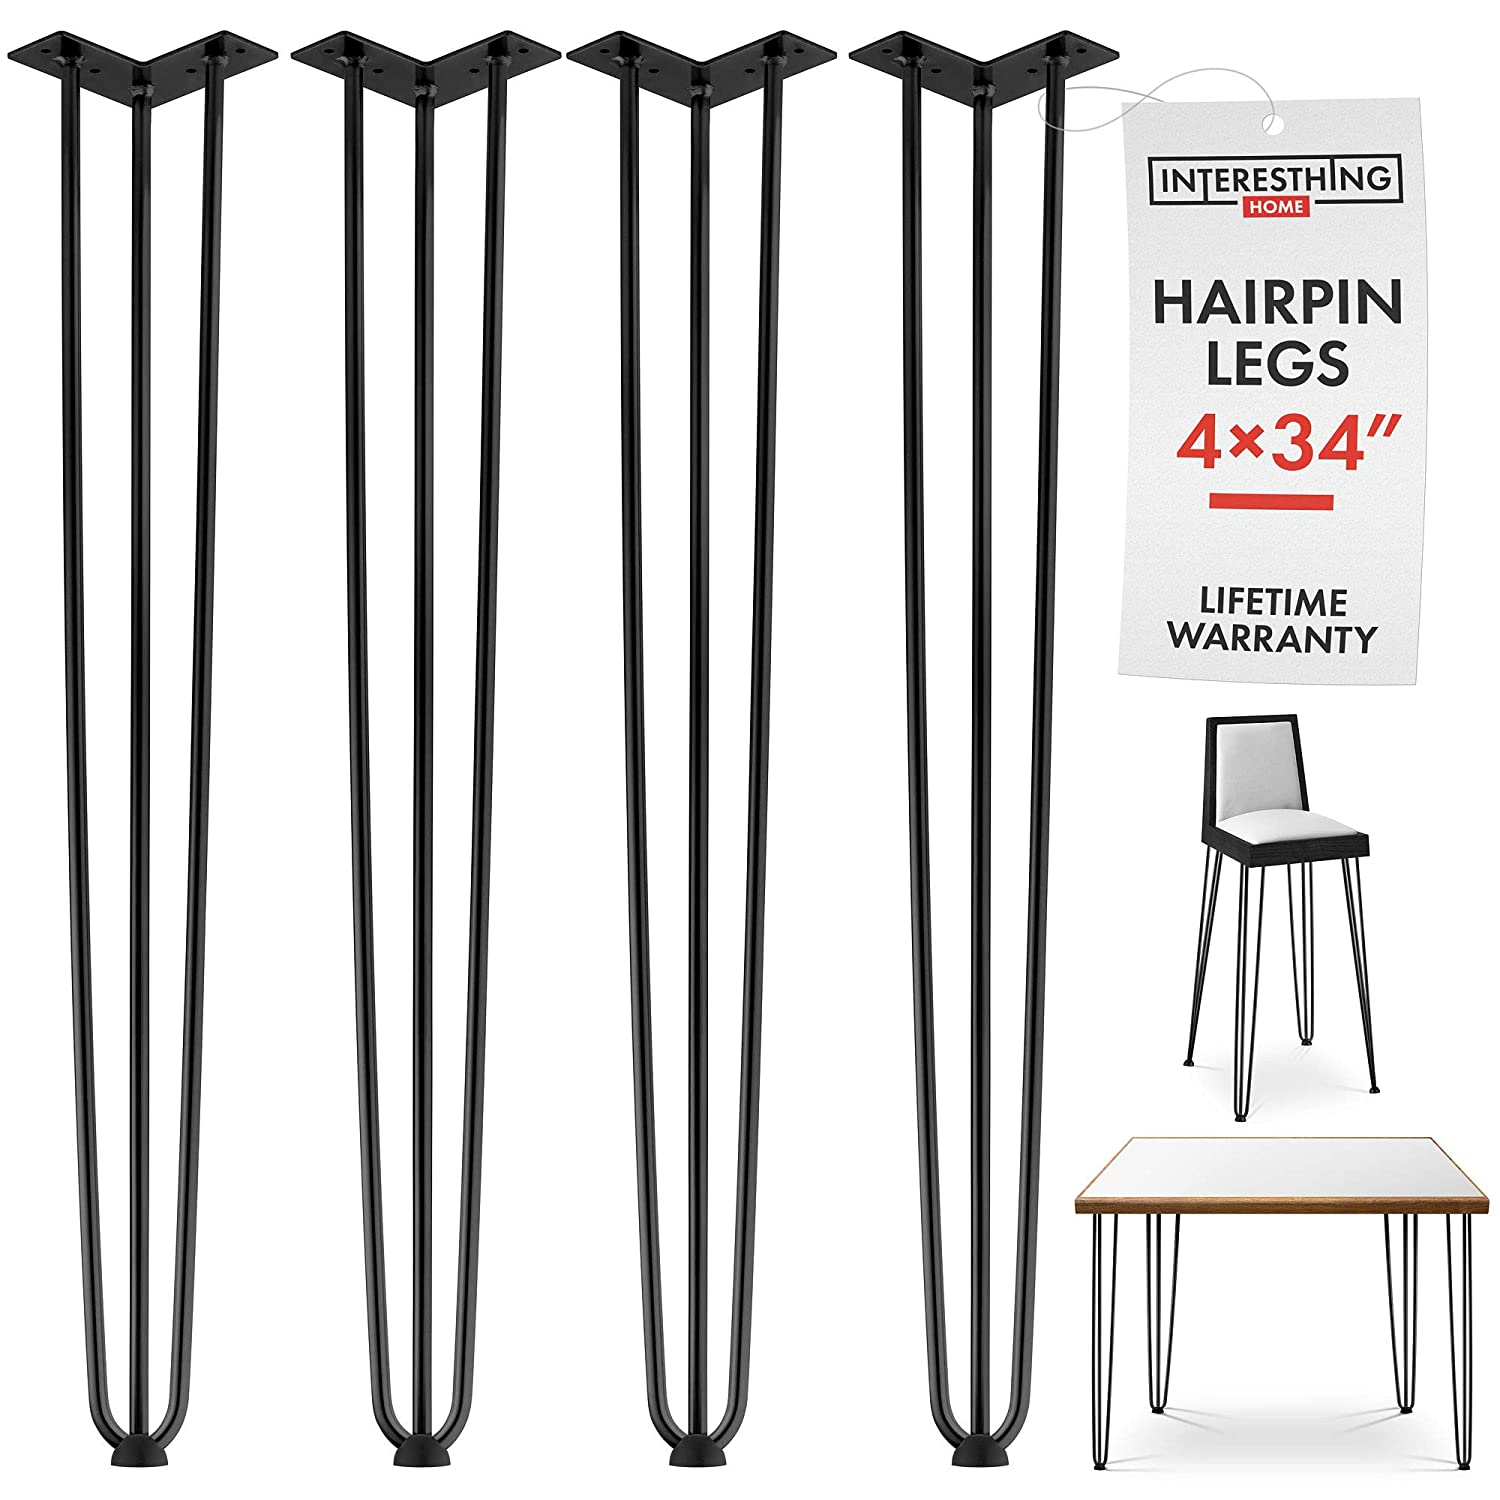 34 Inch Hairpin Legs – 4 Easy to Install Metal Legs for Furniture – Mid-Century Modern Legs for Coffee and End Tables, Chairs, Home DIY Projects + Bonus Rubber Floor Protectors by INTERESTHING Home